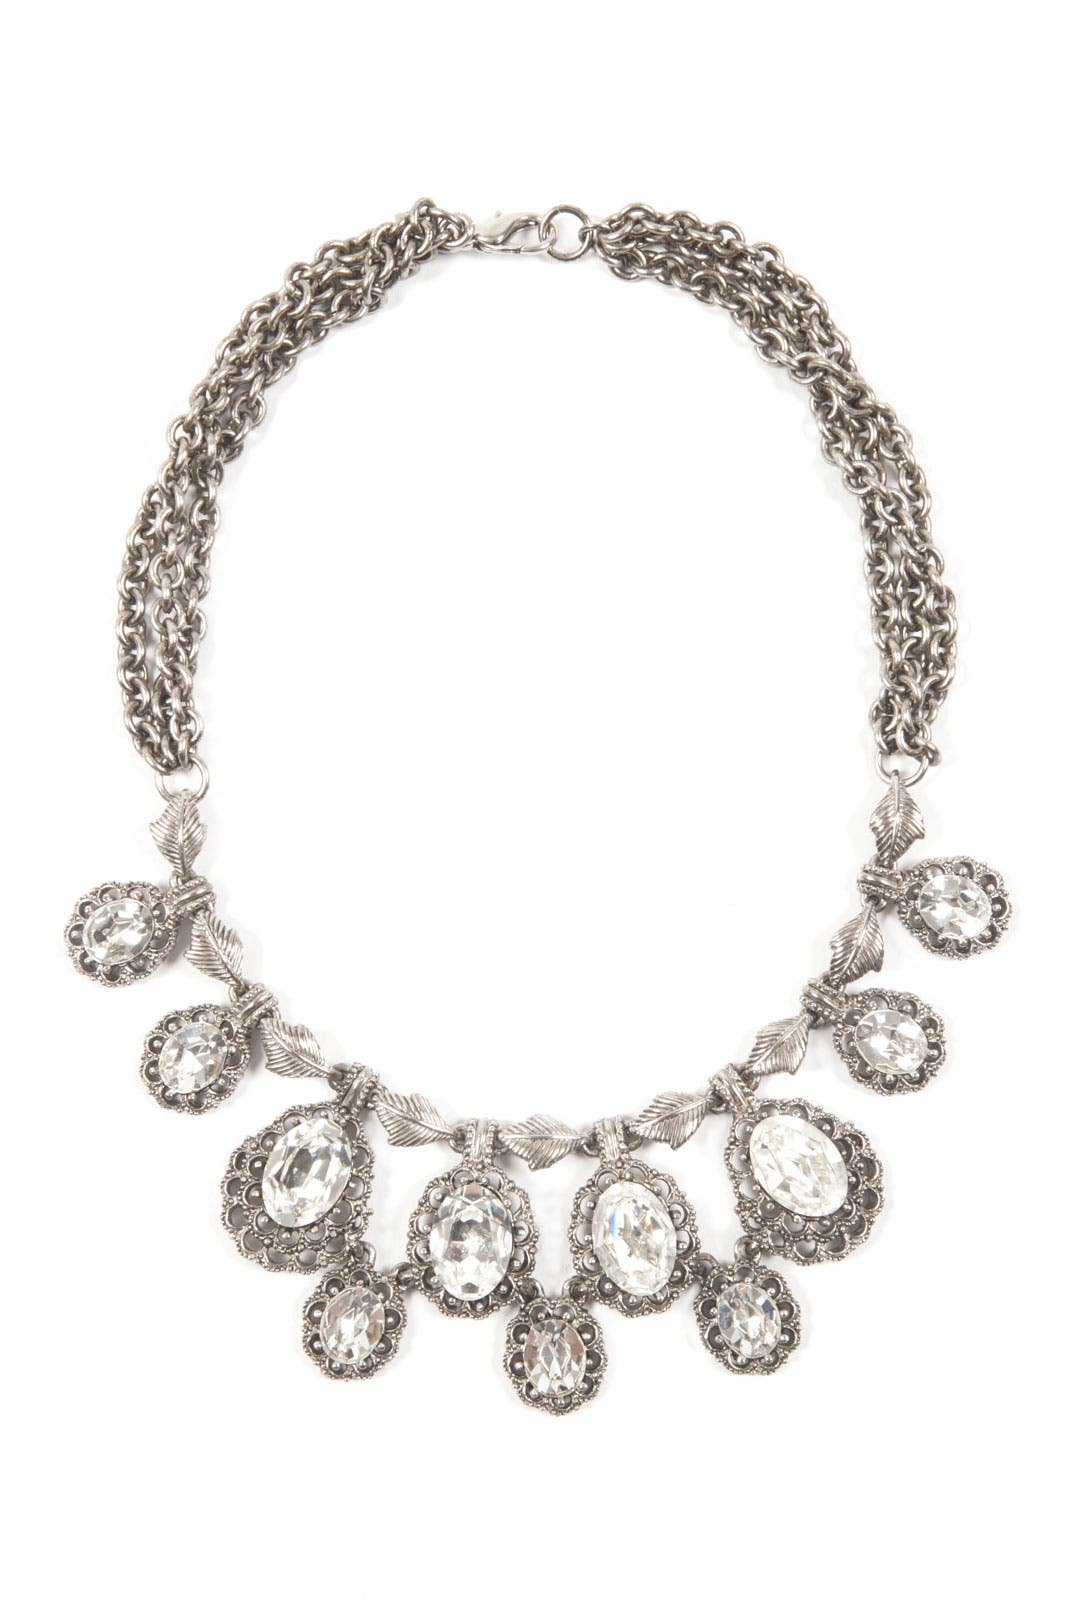 Antique Crystal Cherish Necklace by Ciner